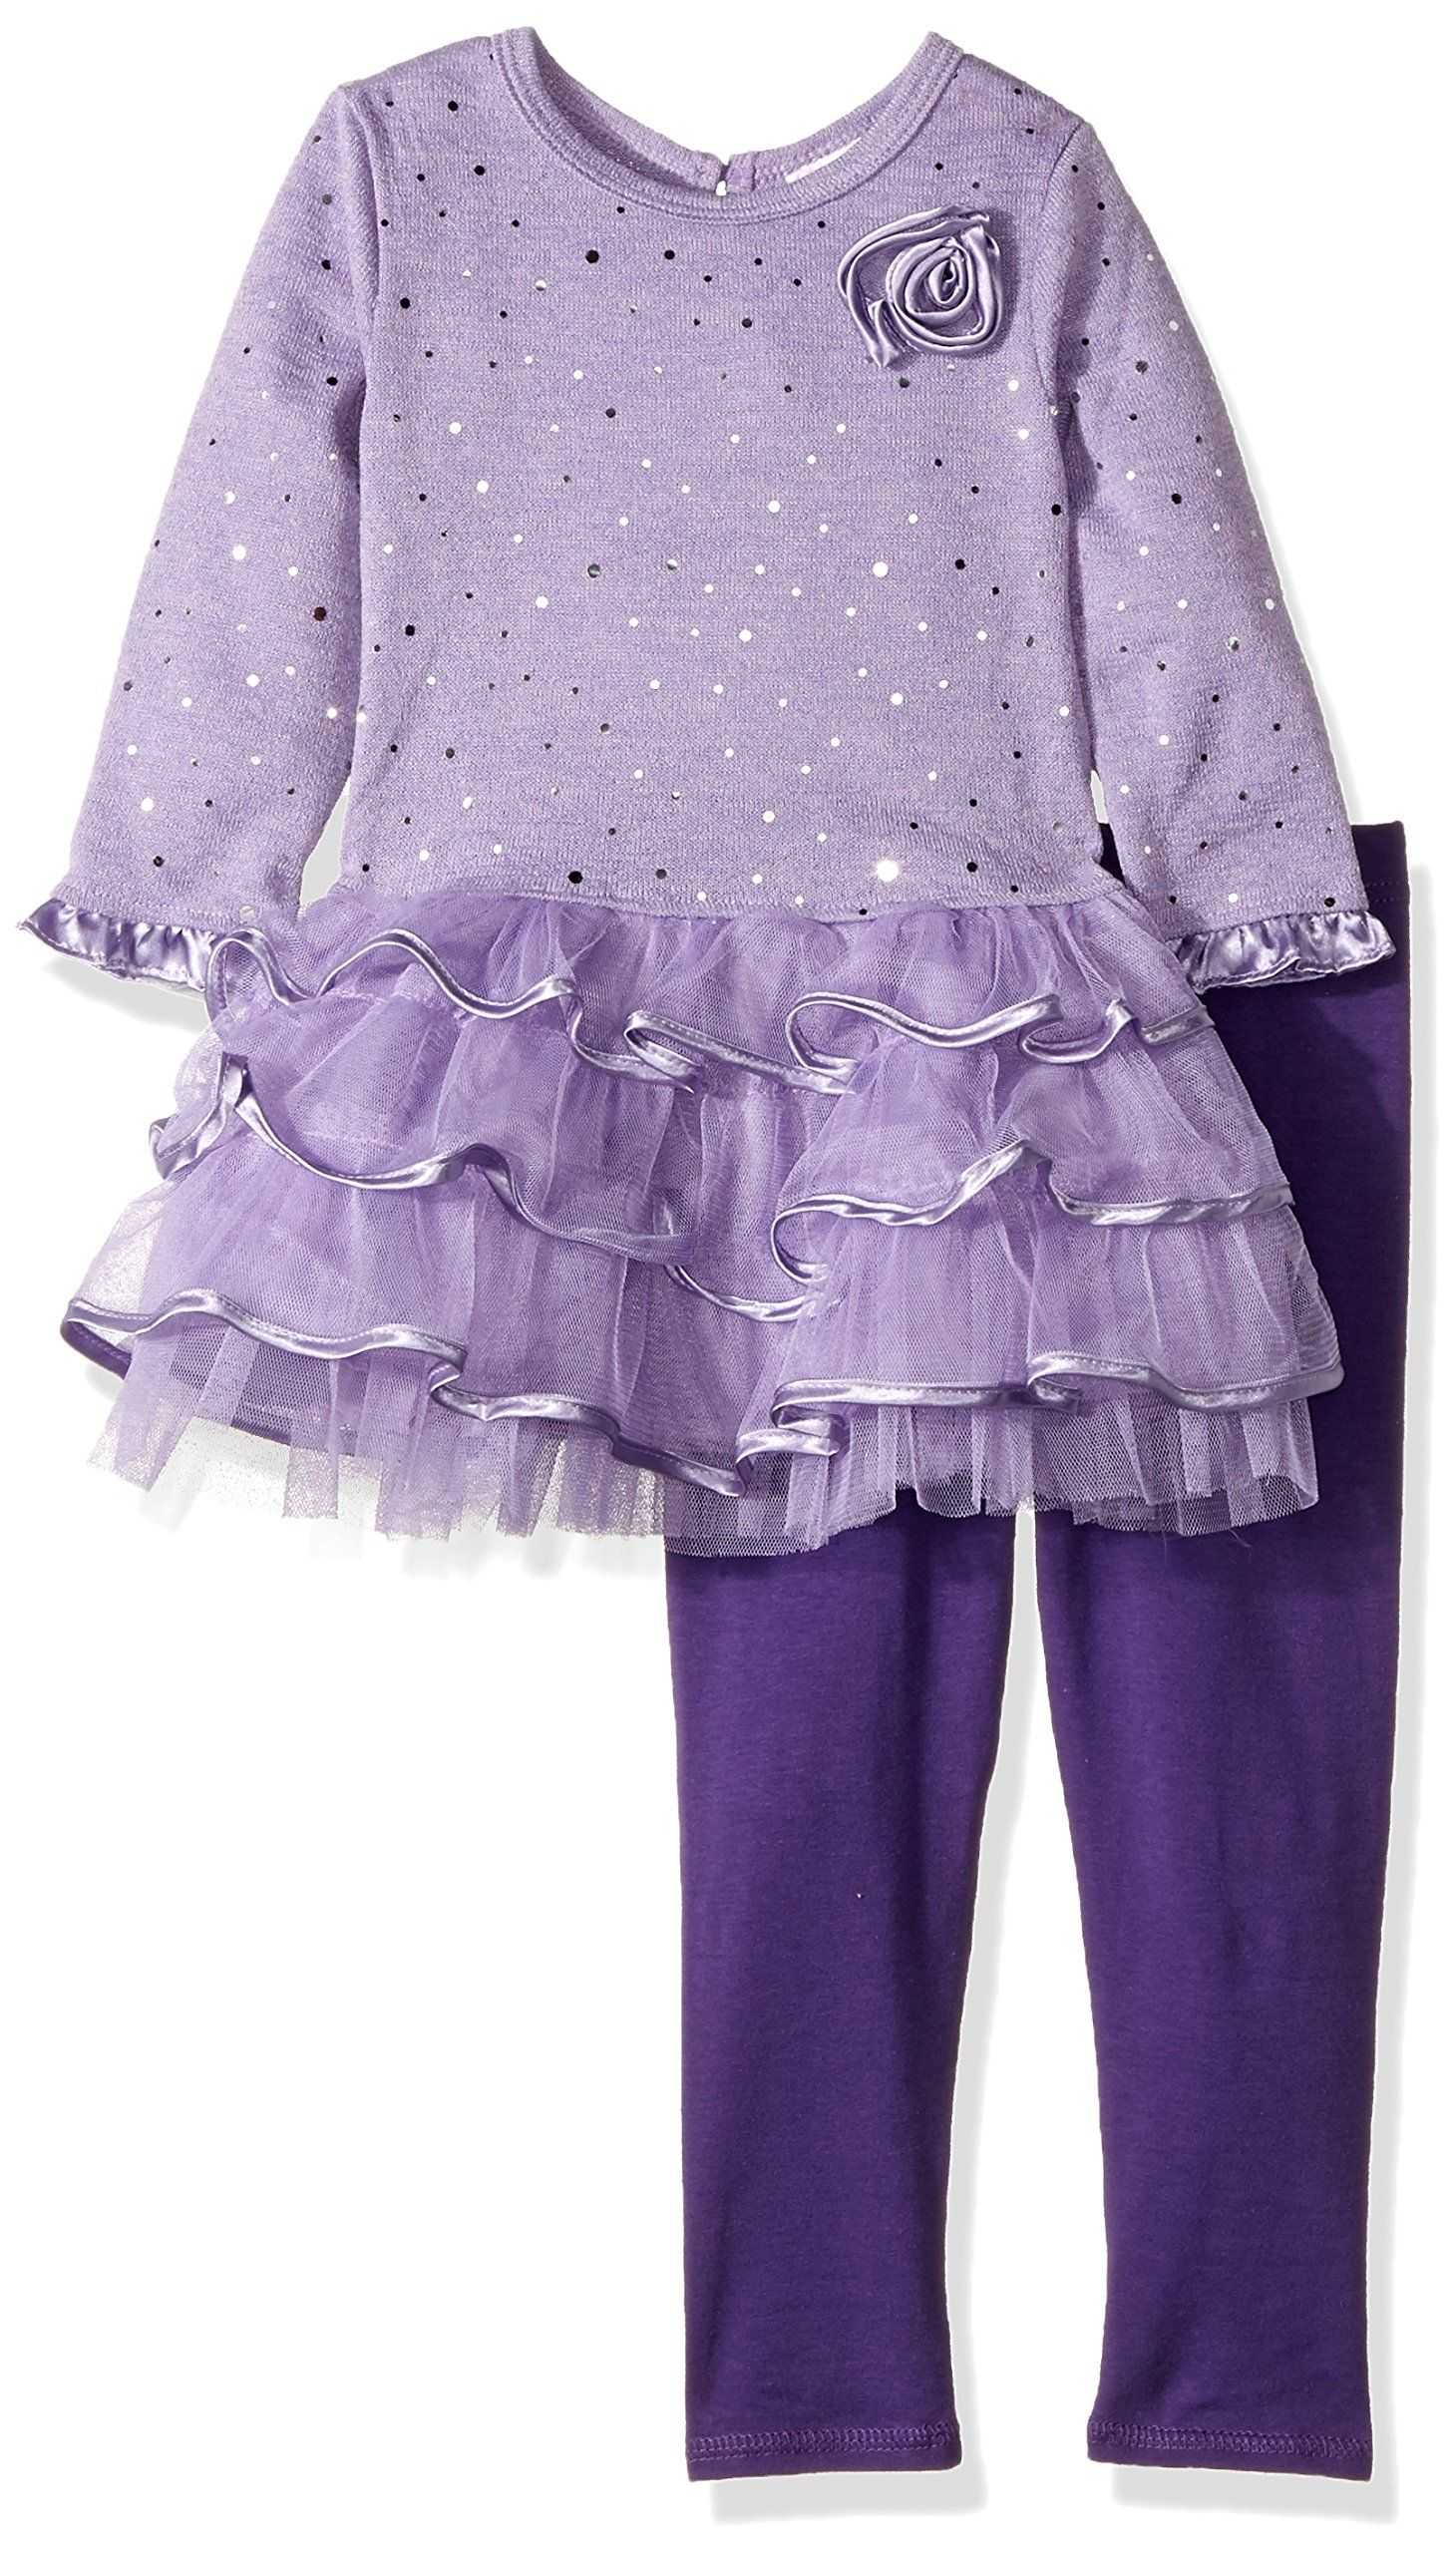 aa48803bb Youngland Little Girls' Sparkle Brushed Sweater Knit and Mesh Tiered Dress,  Purple, 6X